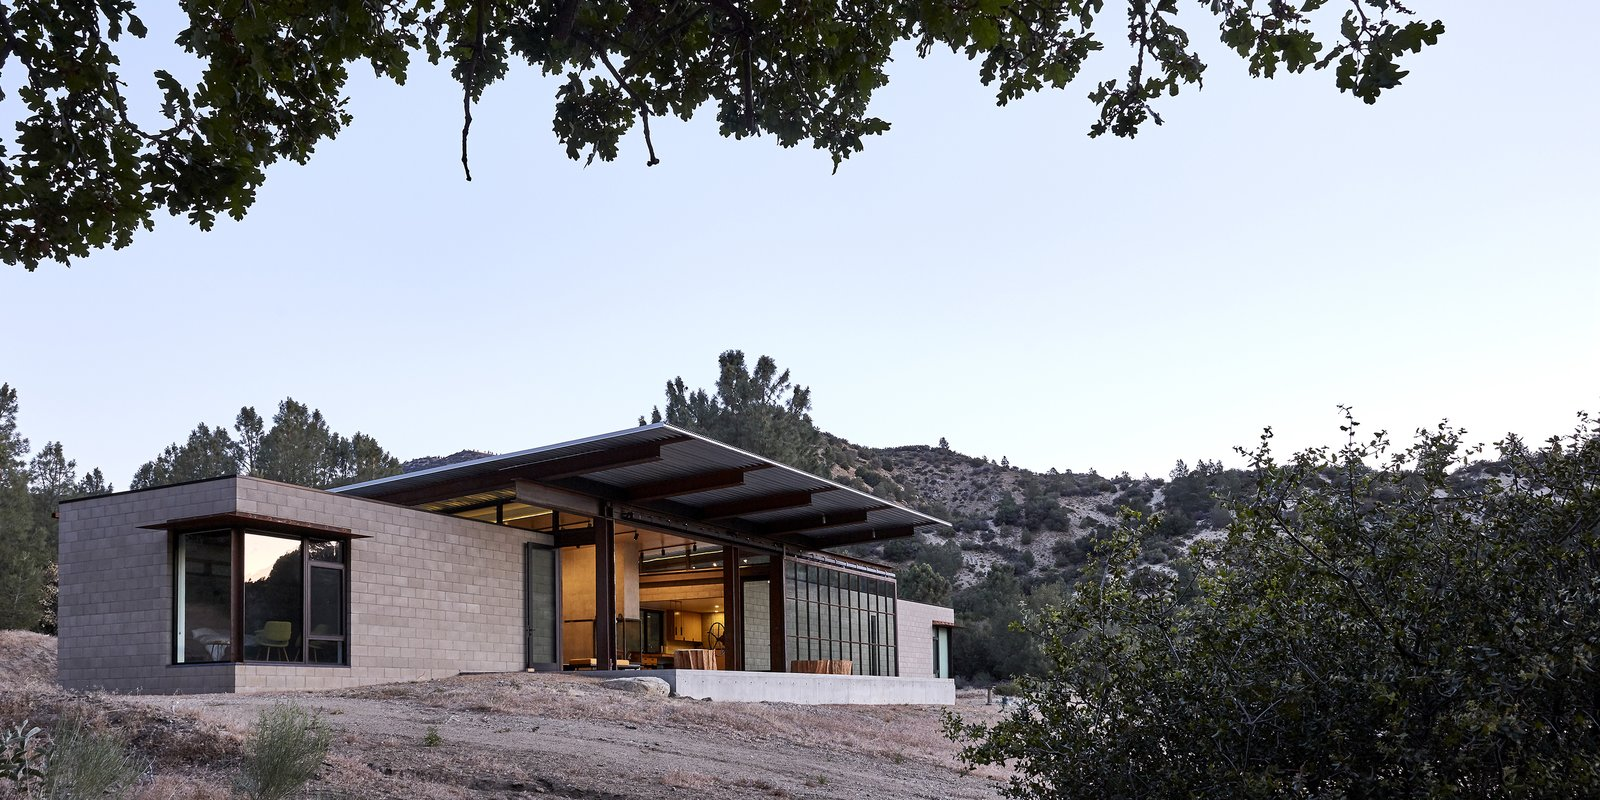 Exterior, House Building Type, and Concrete Siding Material - Tehachapi Mountains, California Dwell Magazine : November / December 2017  Best Photos from At This High-Desert Home, a Whole Wall Opens Up When You Crank a Giant Wheel